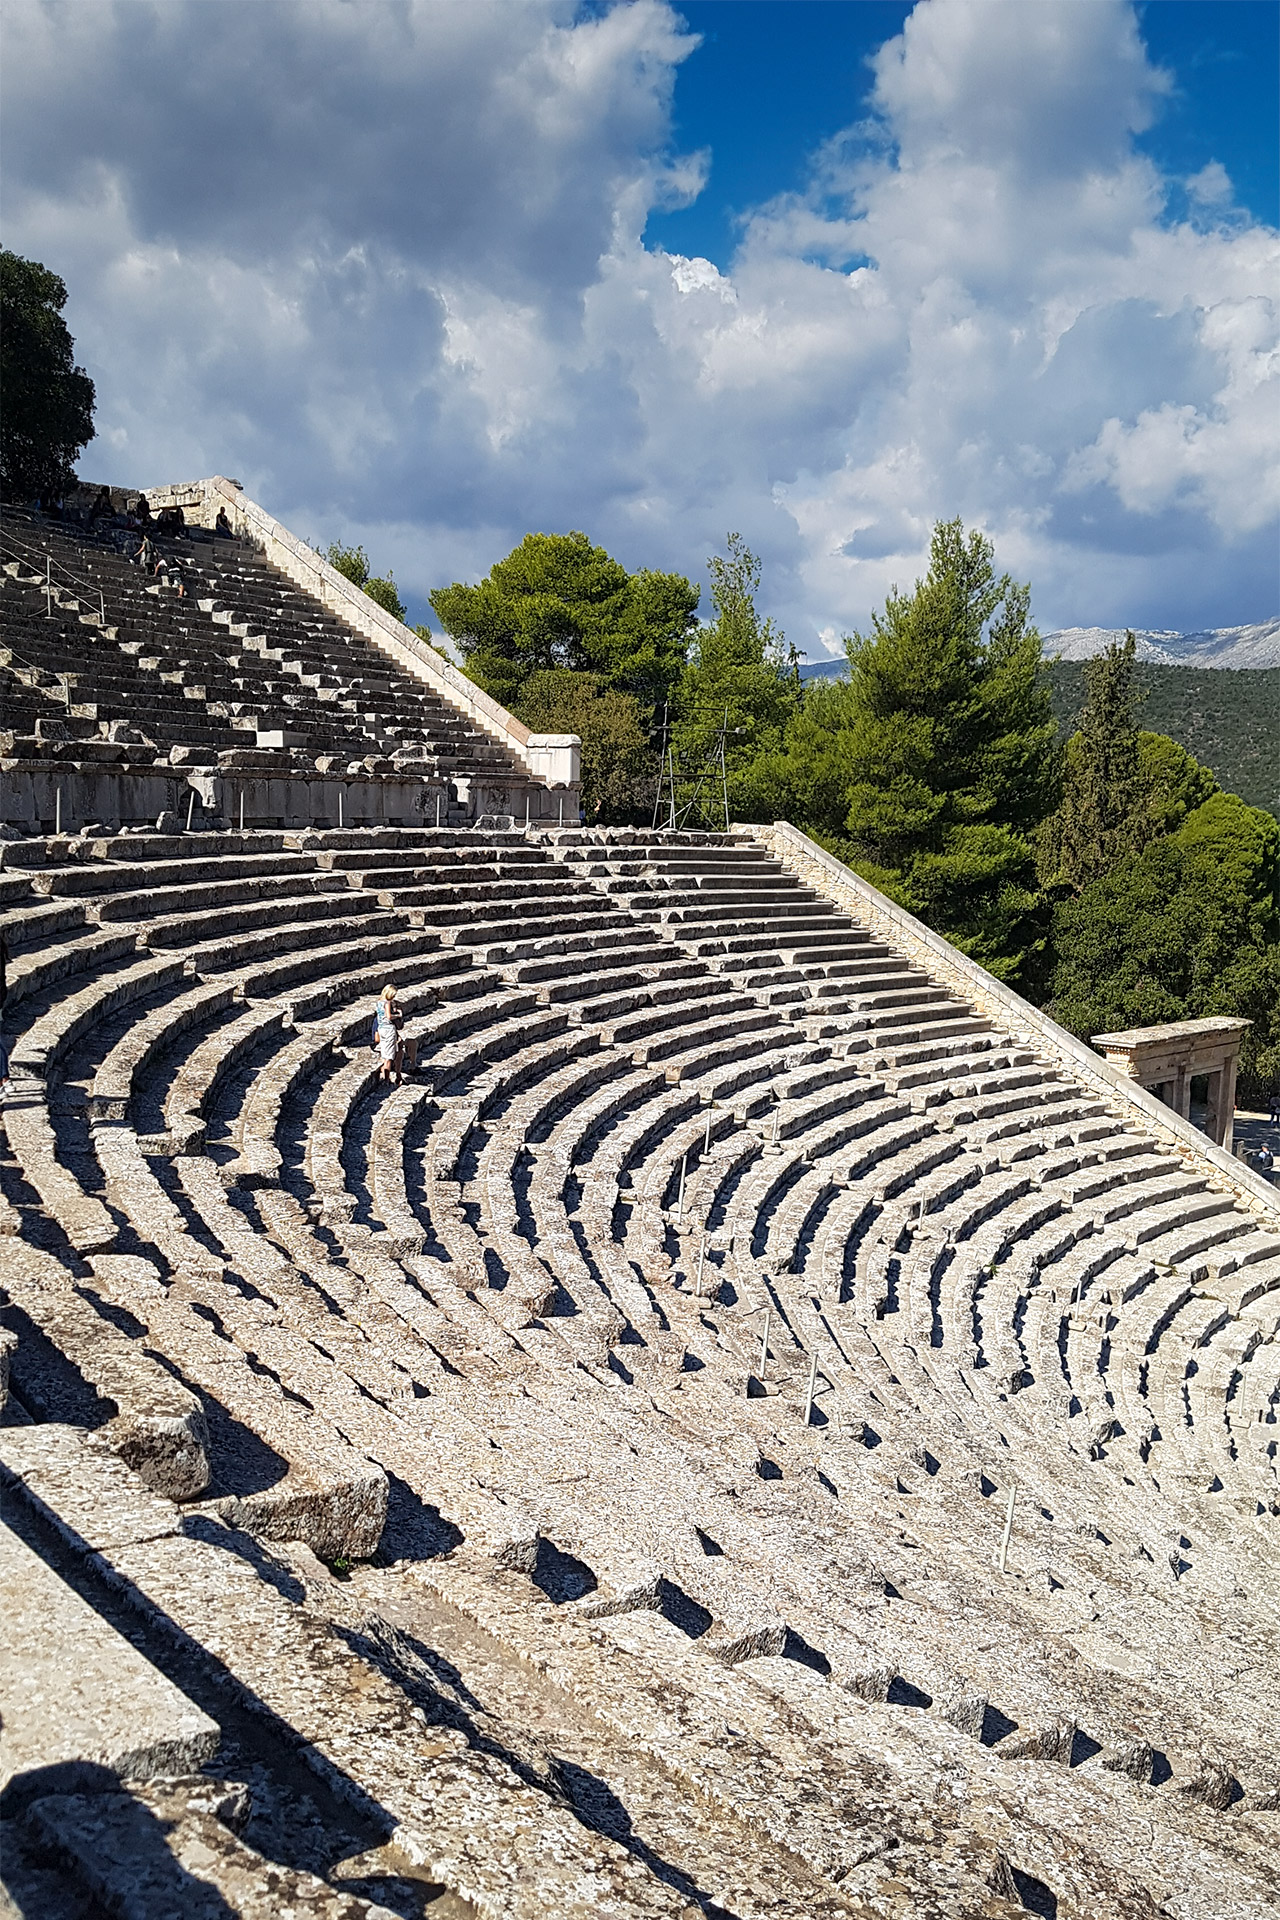 Greece's best-preserved ancient theatre and one of the most perfect structures of antiquity